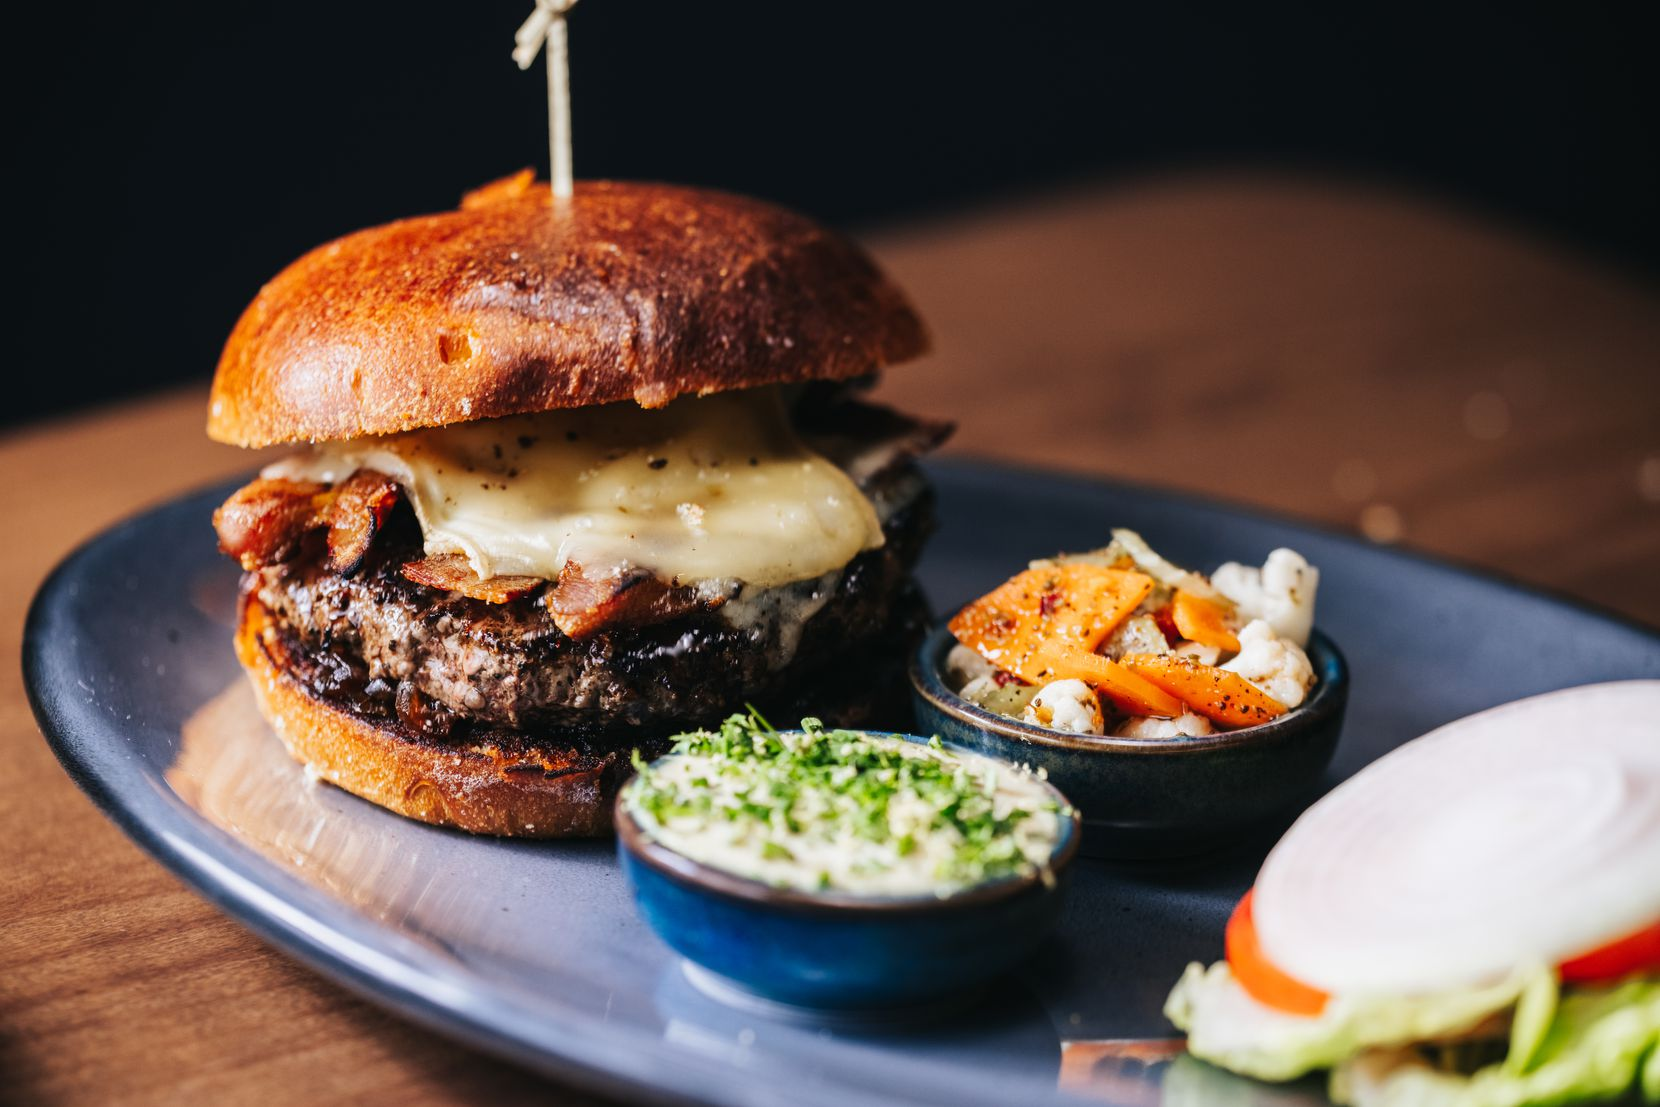 Ounce, a restaurant in downtown Dallas' AT&T Discovery District, sells a burger created by chef Brian Zenner.